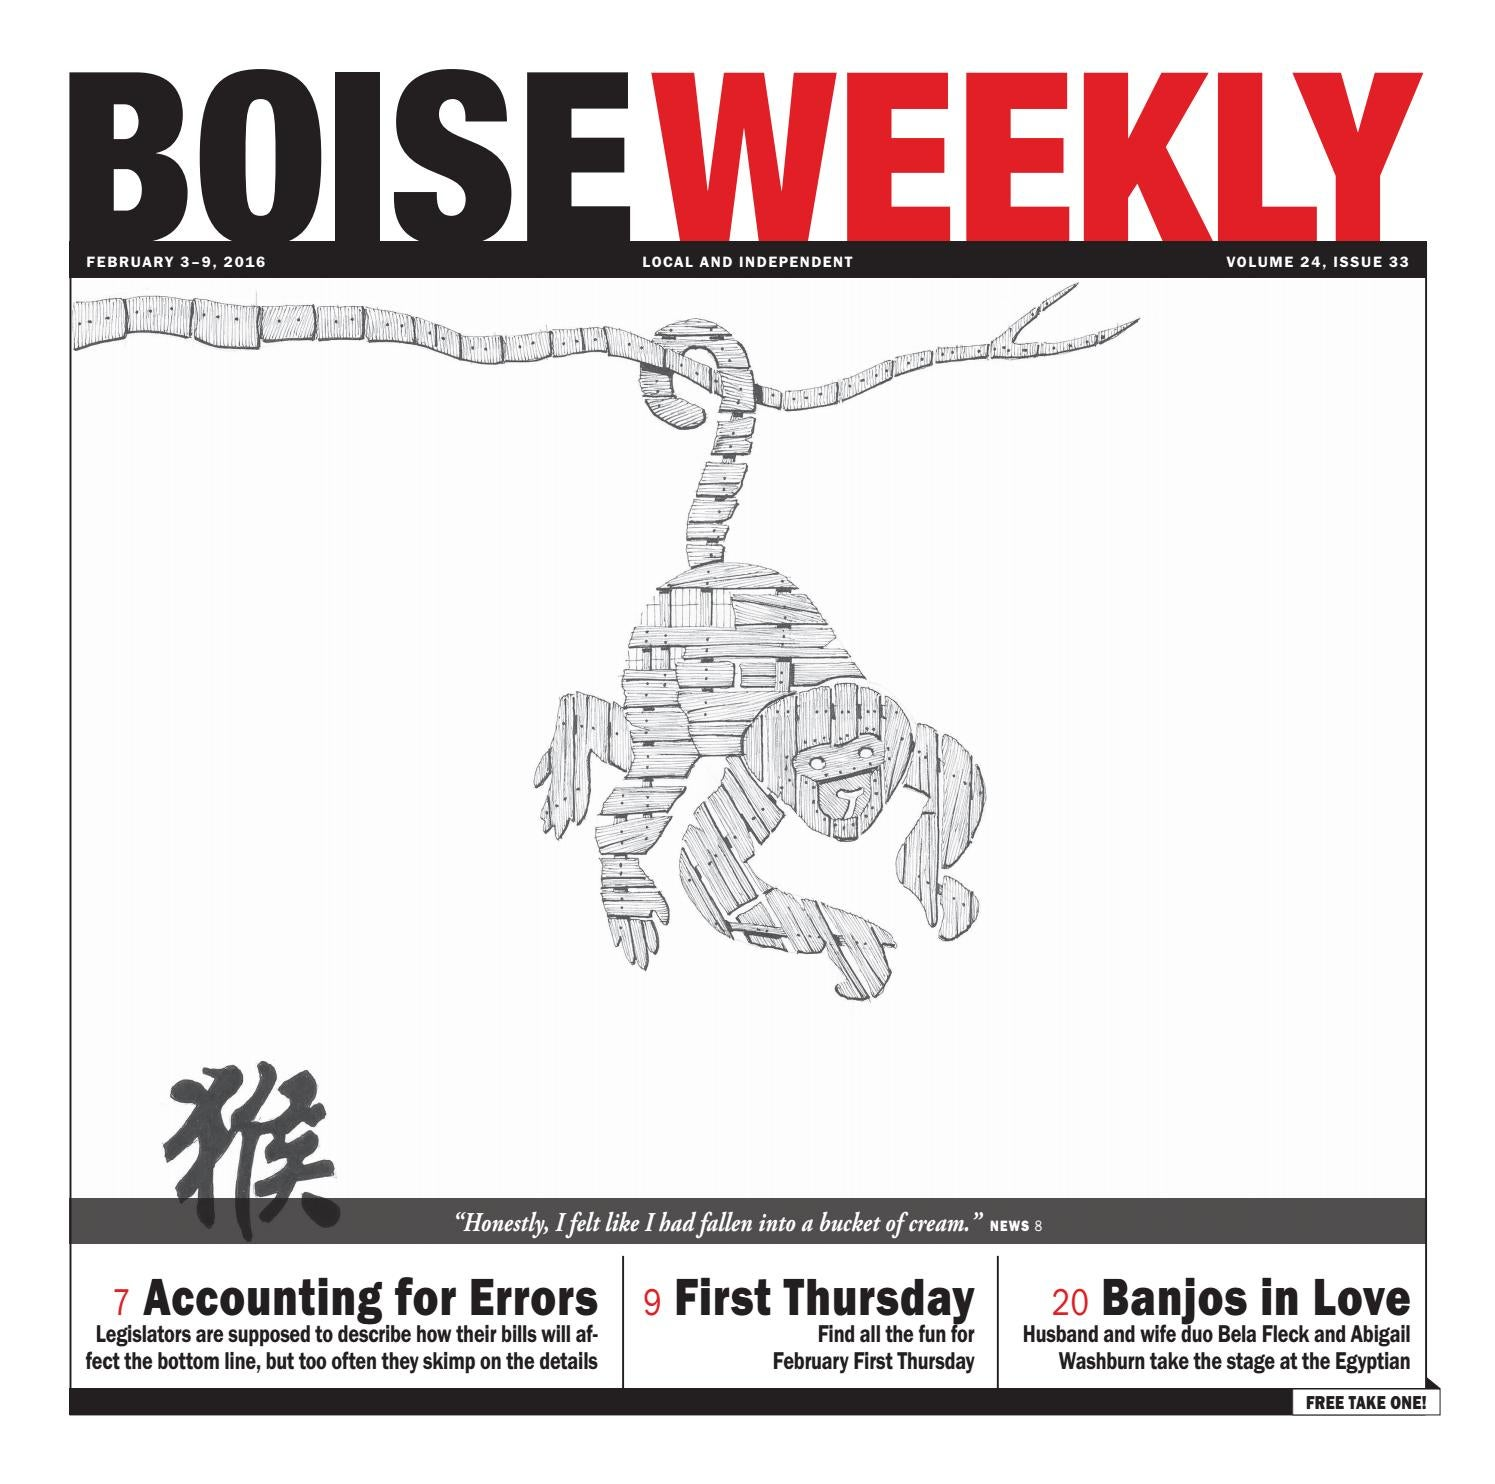 Boise weekly vol24 issue 33 by boise weekly issuu fandeluxe Choice Image